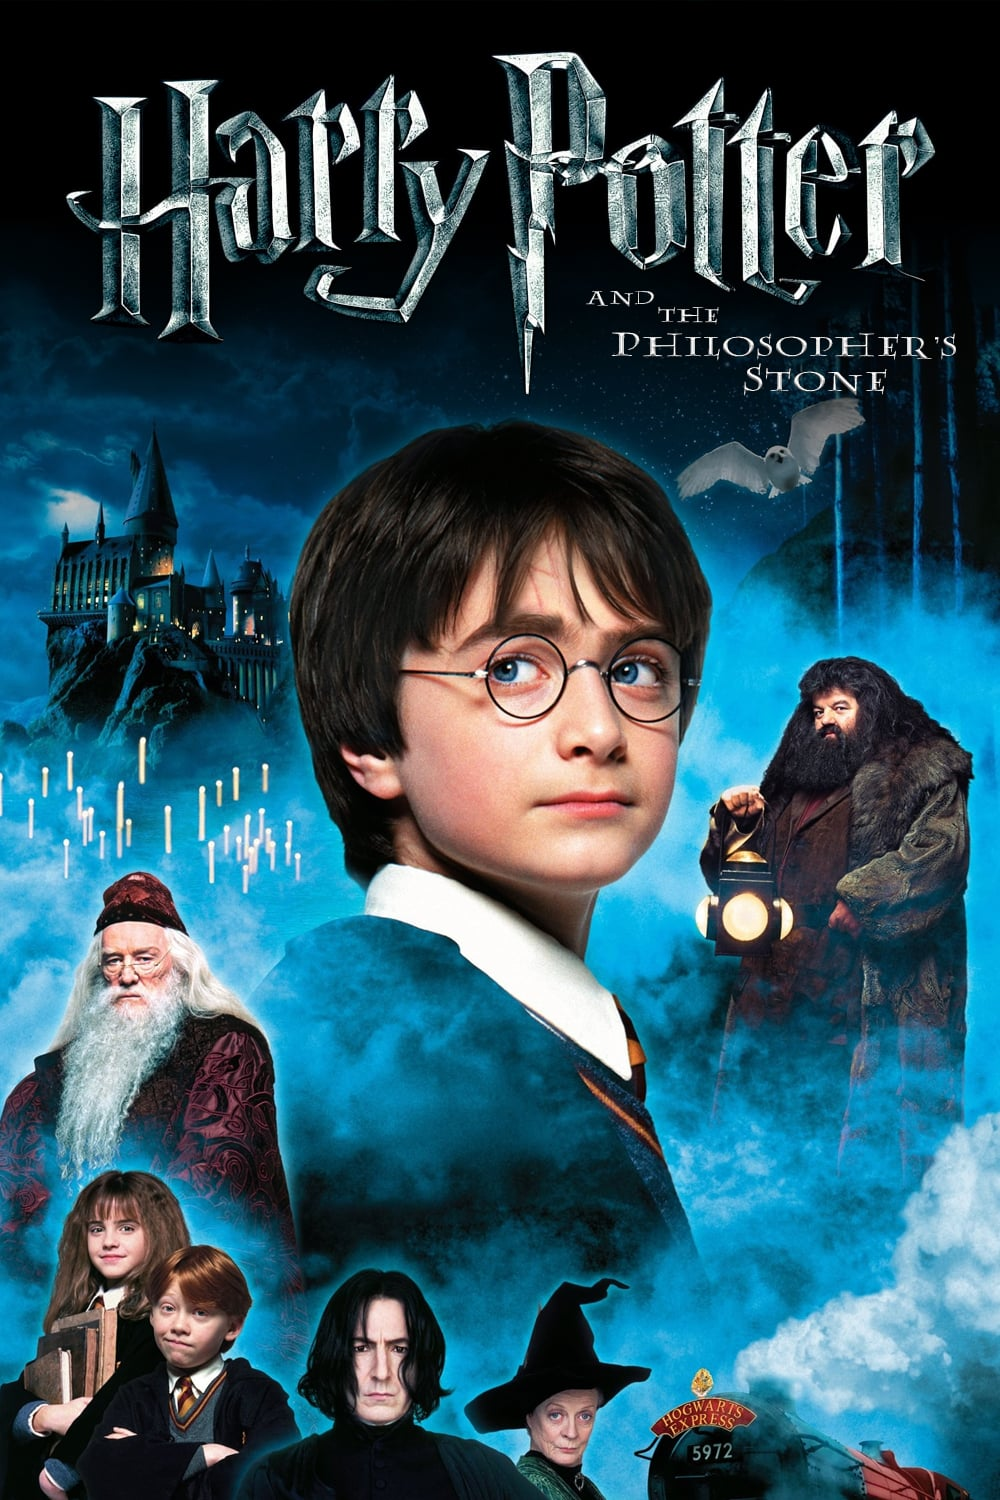 Poster for Harry Potter and the Sorcerer's Stone